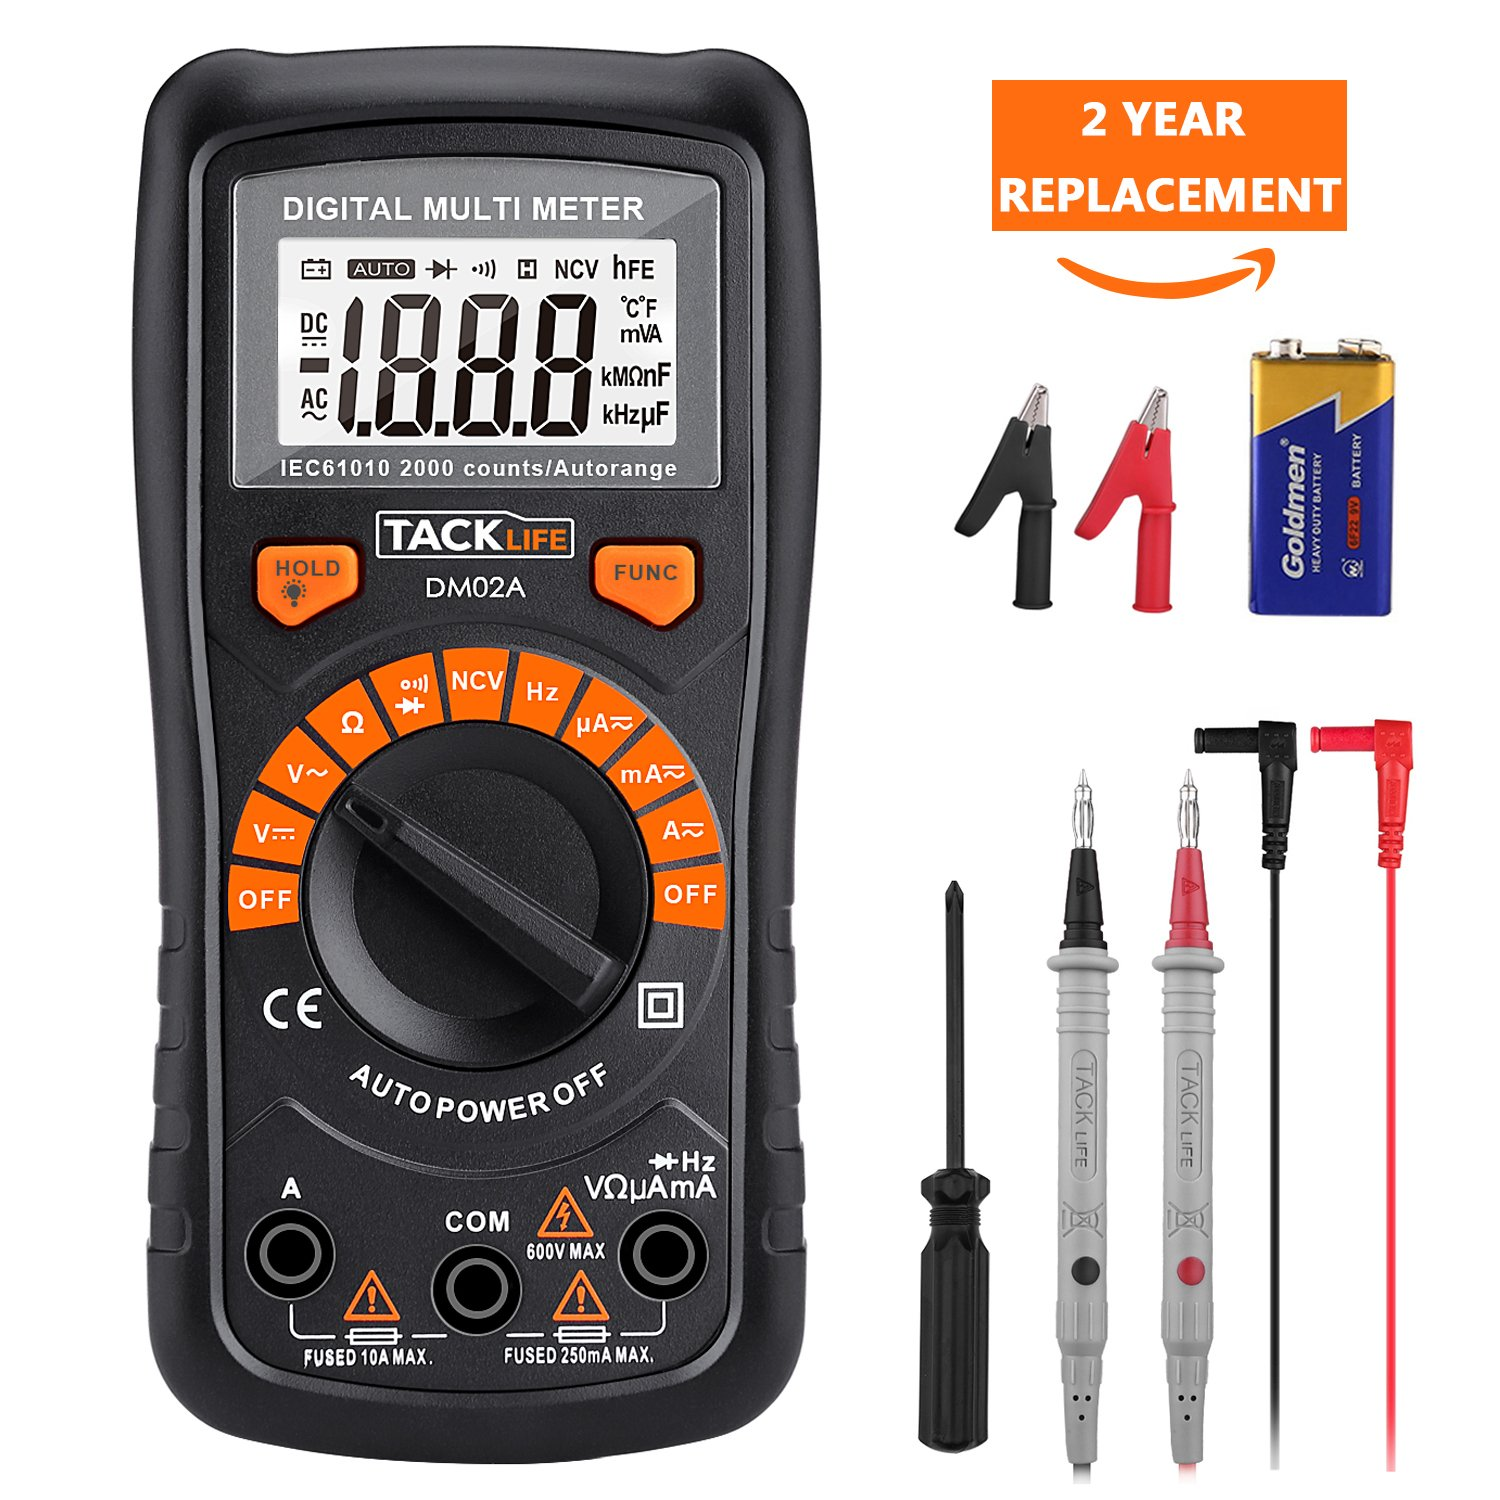 Multimeter Tacklife DM02S Auto-Ranging Digital Multimeters NCV Electrical Tester Multimeter Tester Volt Amp Ohm Diode, Continuity Test Meter LCD Backlight Measurement Tools with Screwdriver by TACKLIFE (Image #1)